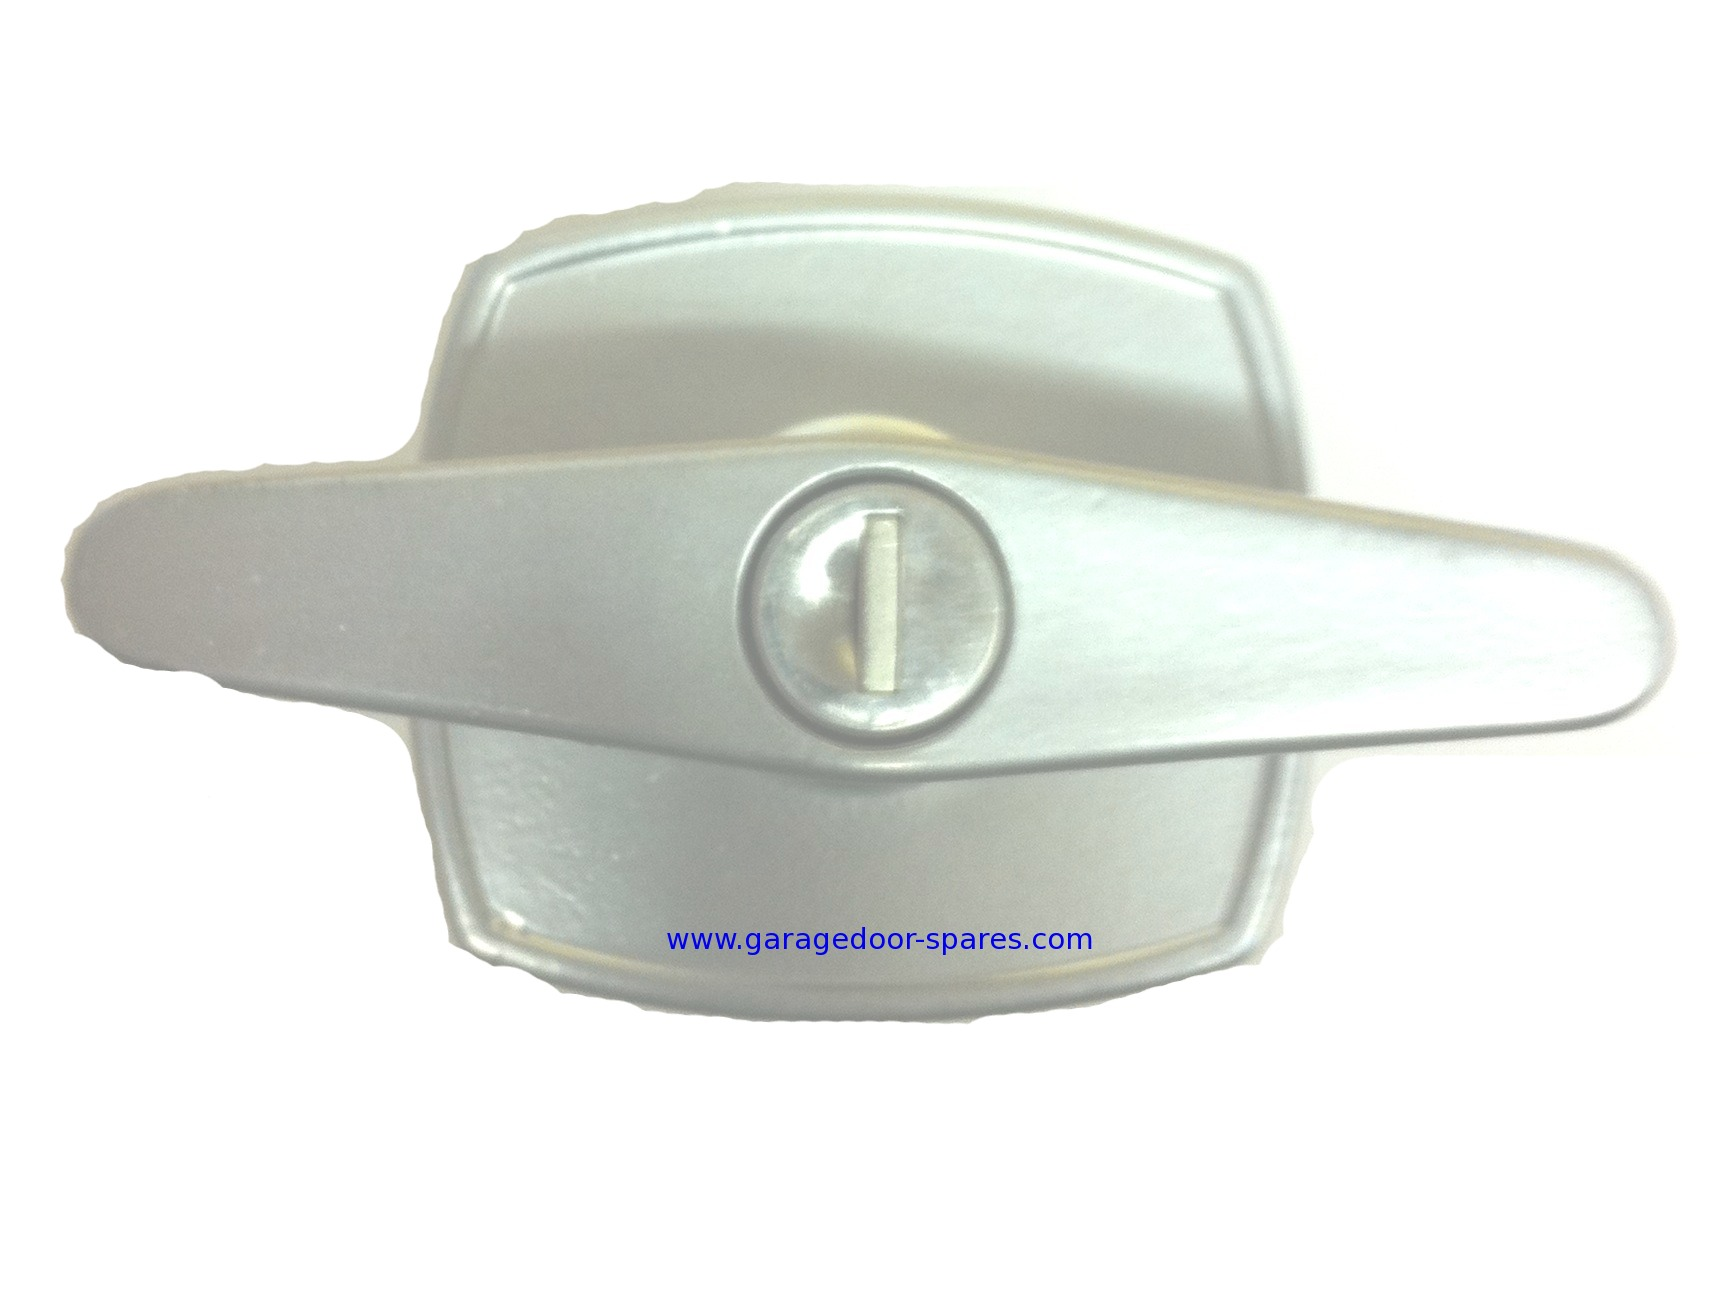 Cardale Garage Door Locking Handle Early Garage Door